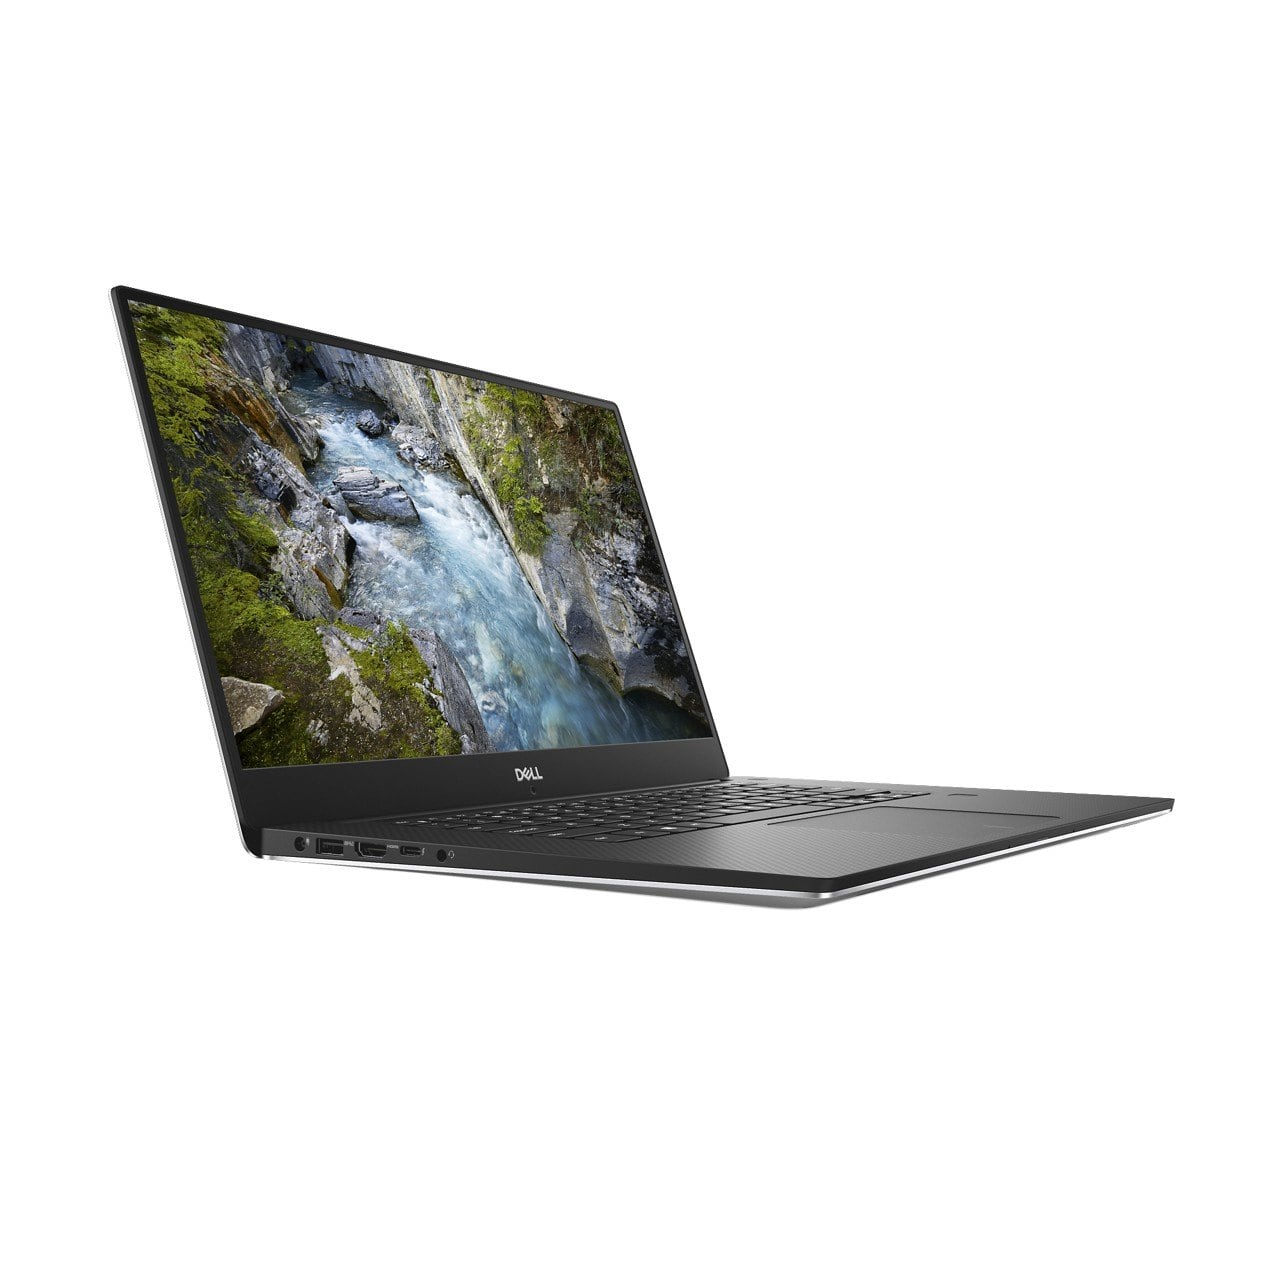 Dell XPS 15 9570 Laptop Intel i5 8300H 256GB SSD 8GB RAM: $860 AC + FS (Other Models Available)